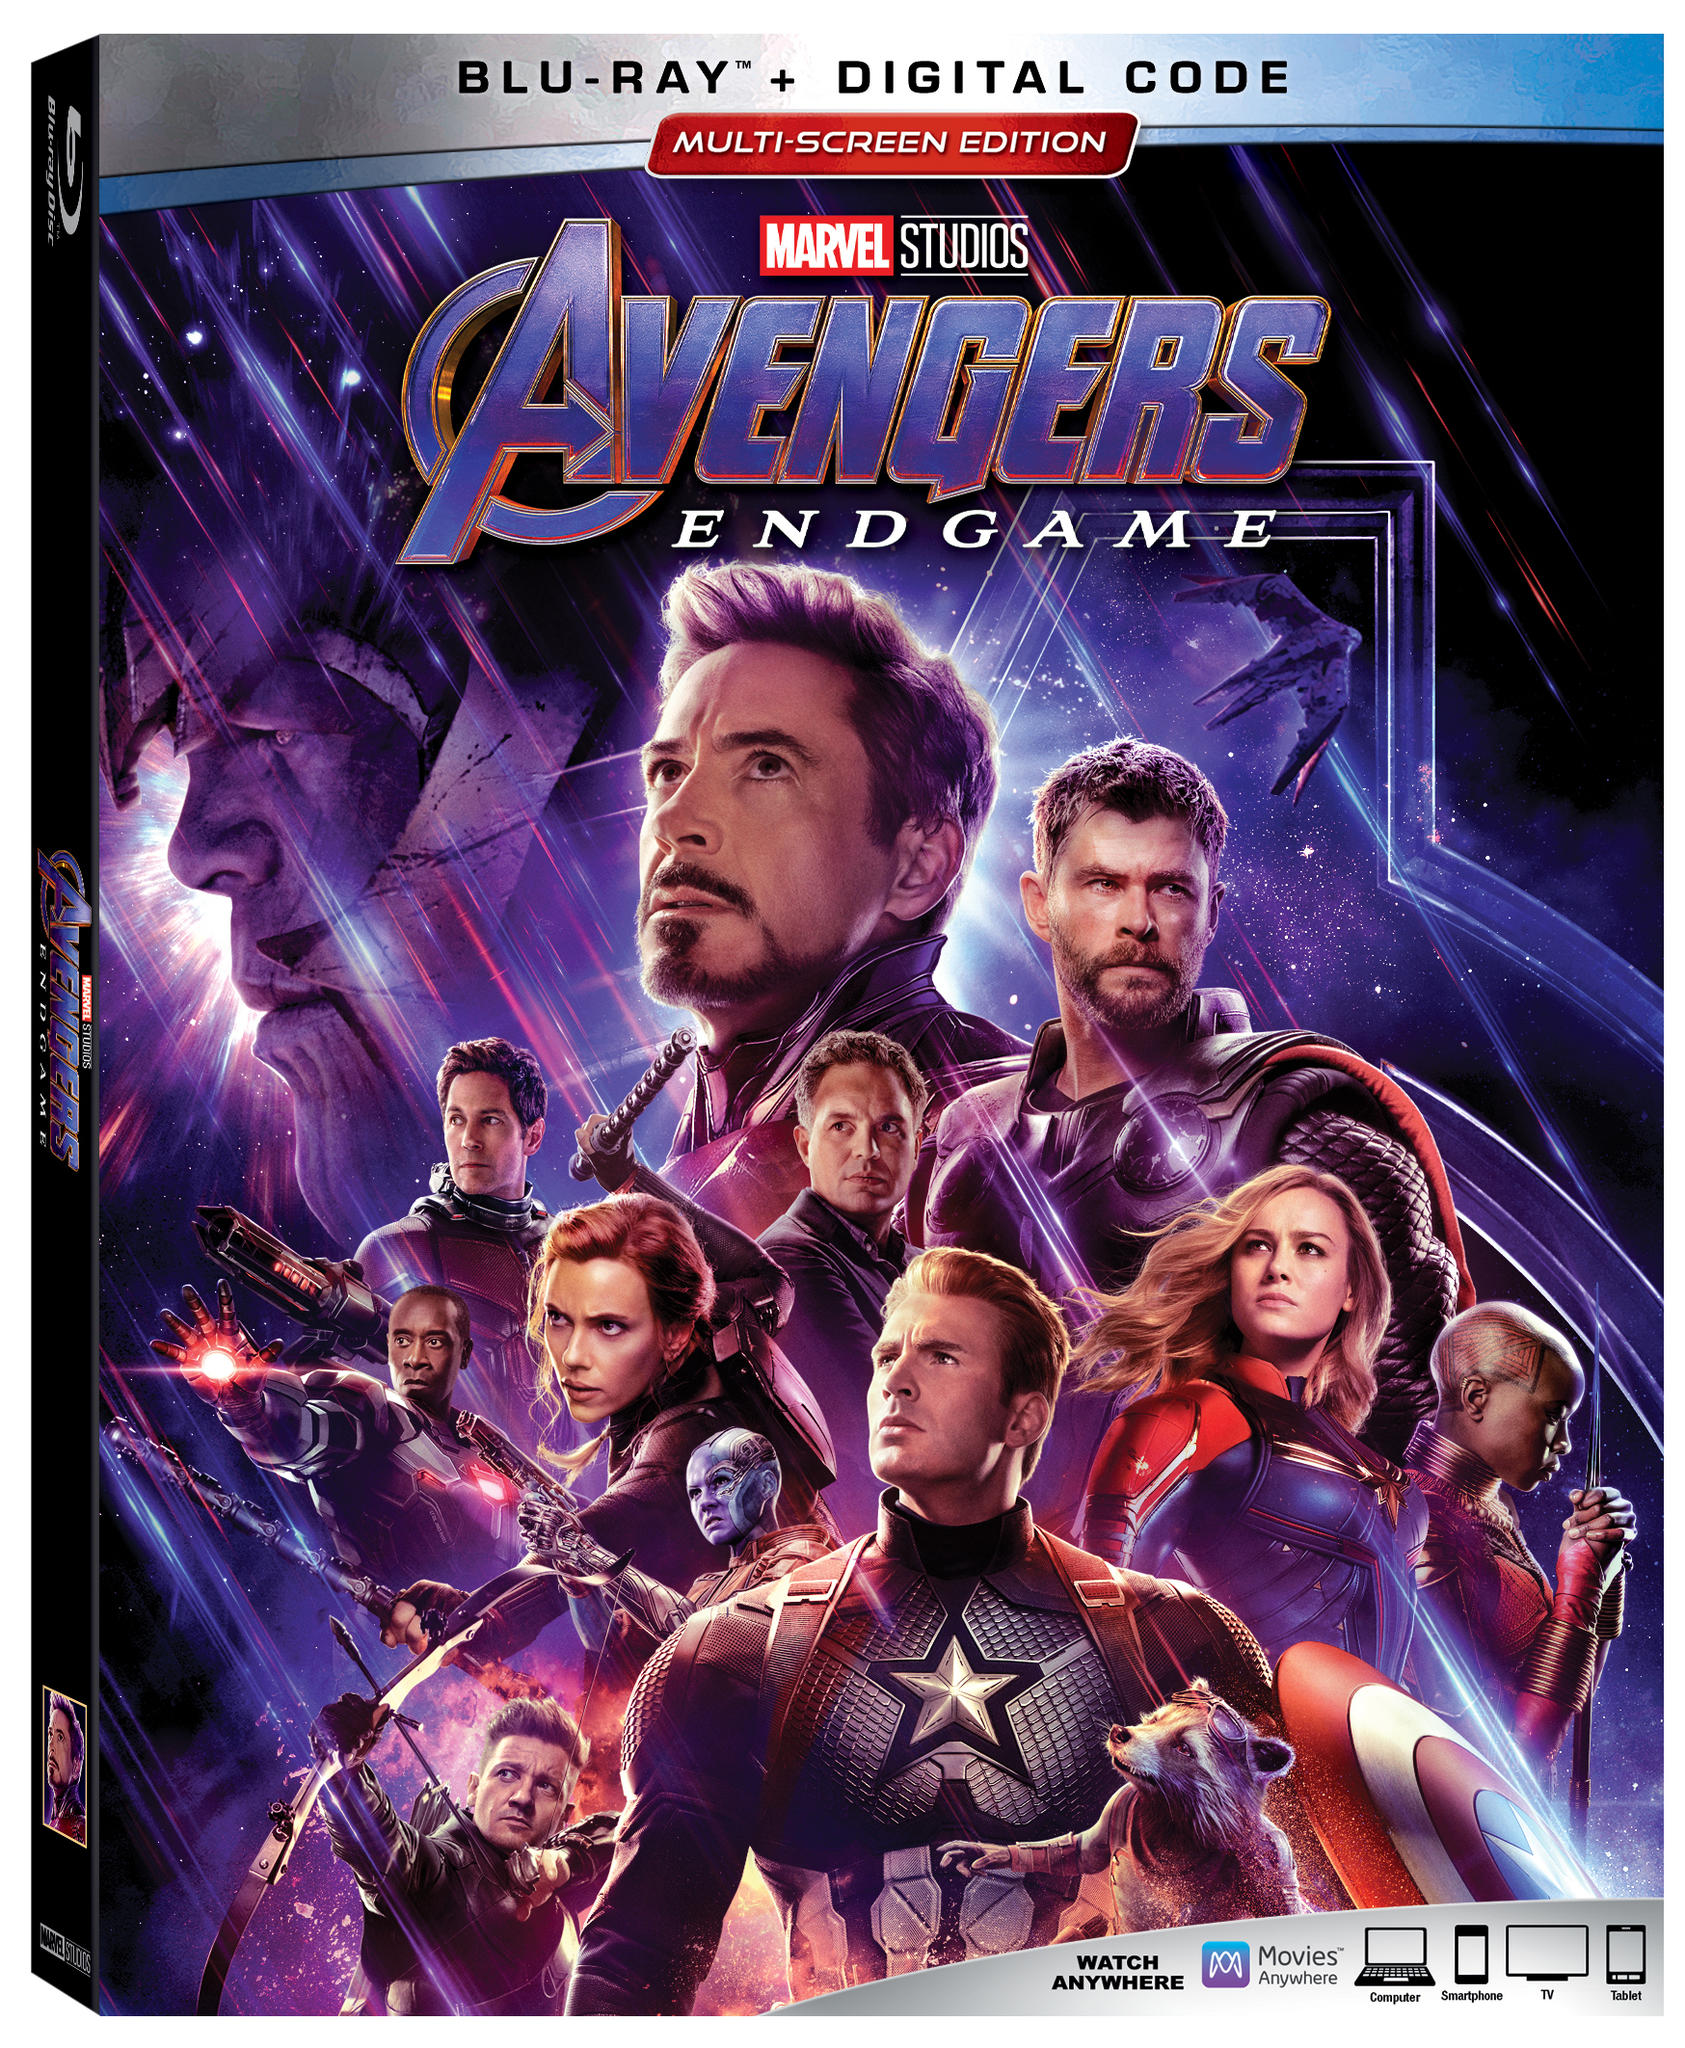 Avengers: Endgame - Everything you need to know | TechnoBuffalo